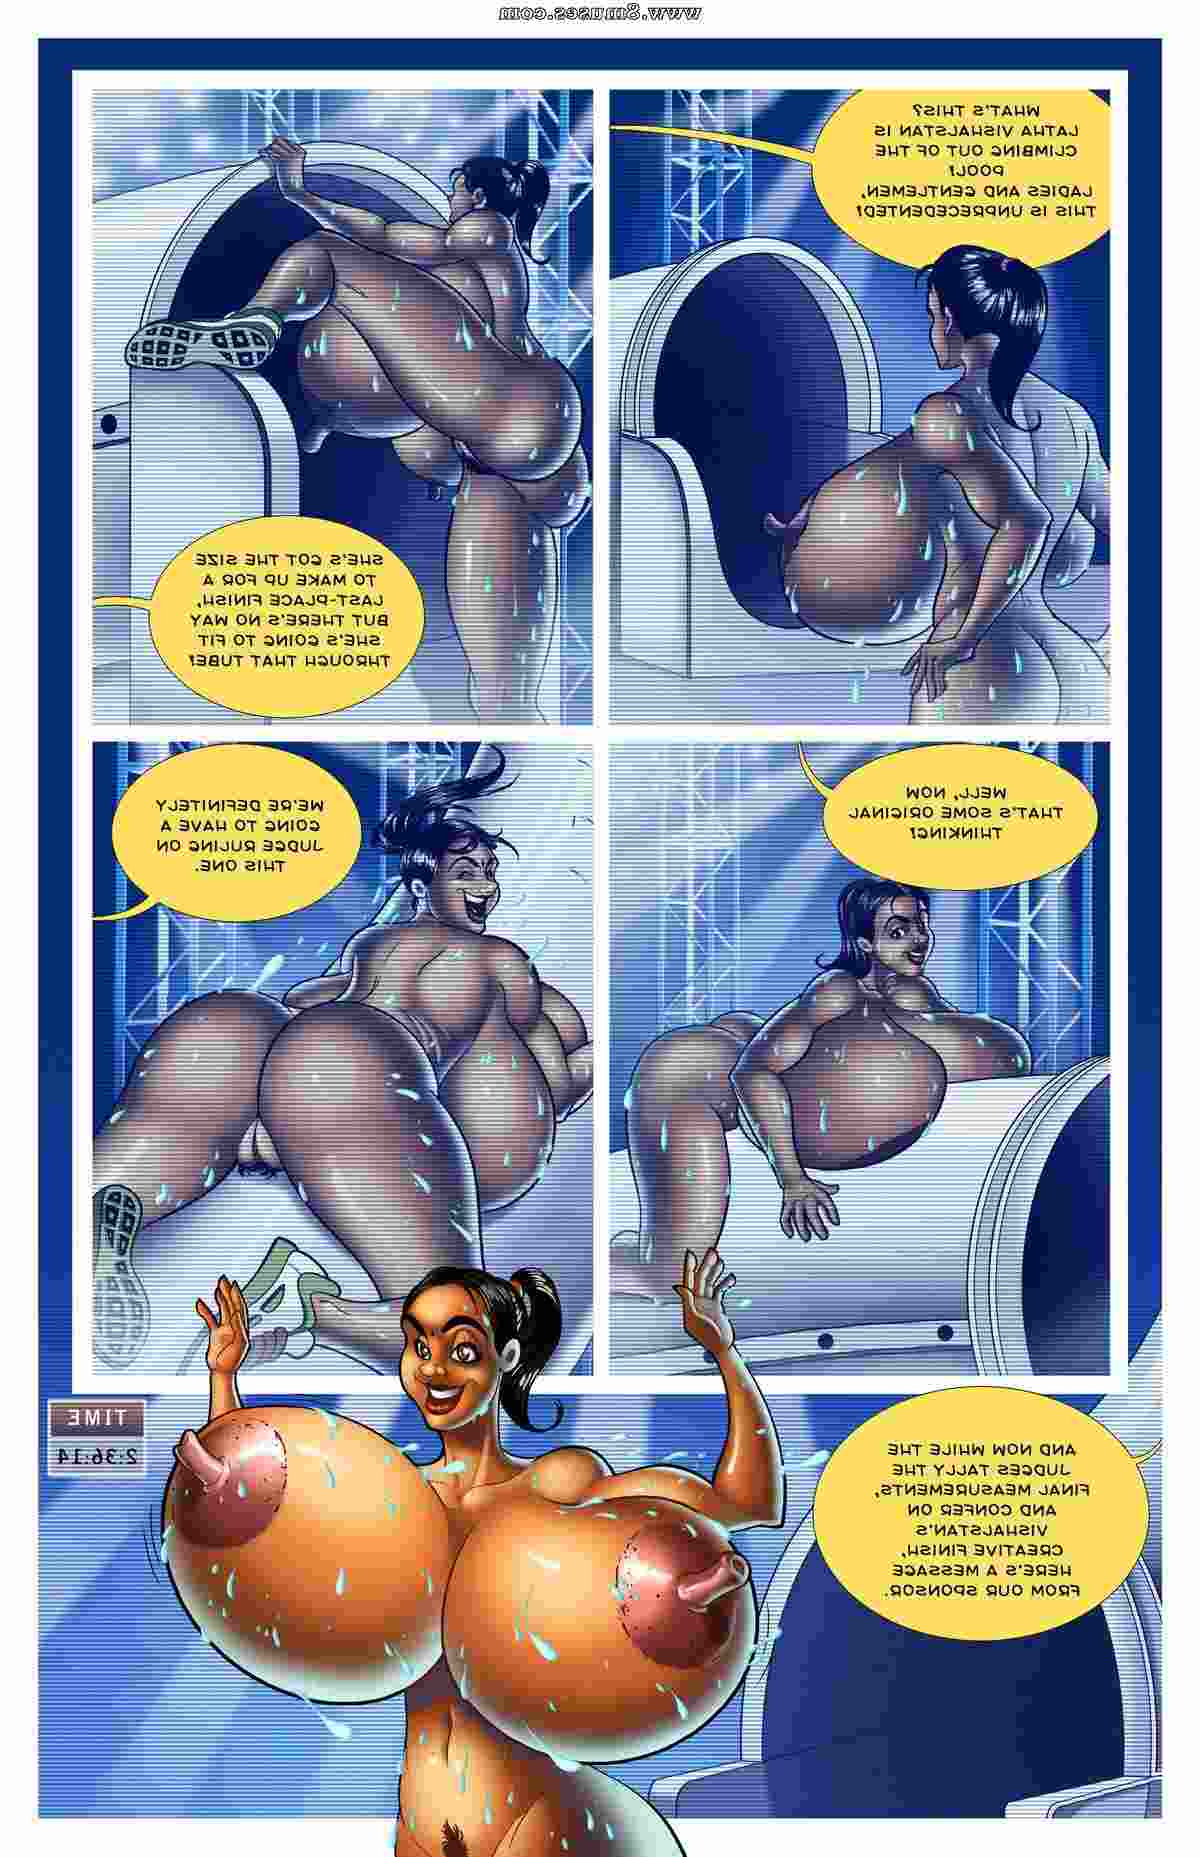 BE-Story-Club-Comics/BE-Olympics BE_Olympics__8muses_-_Sex_and_Porn_Comics_11.jpg